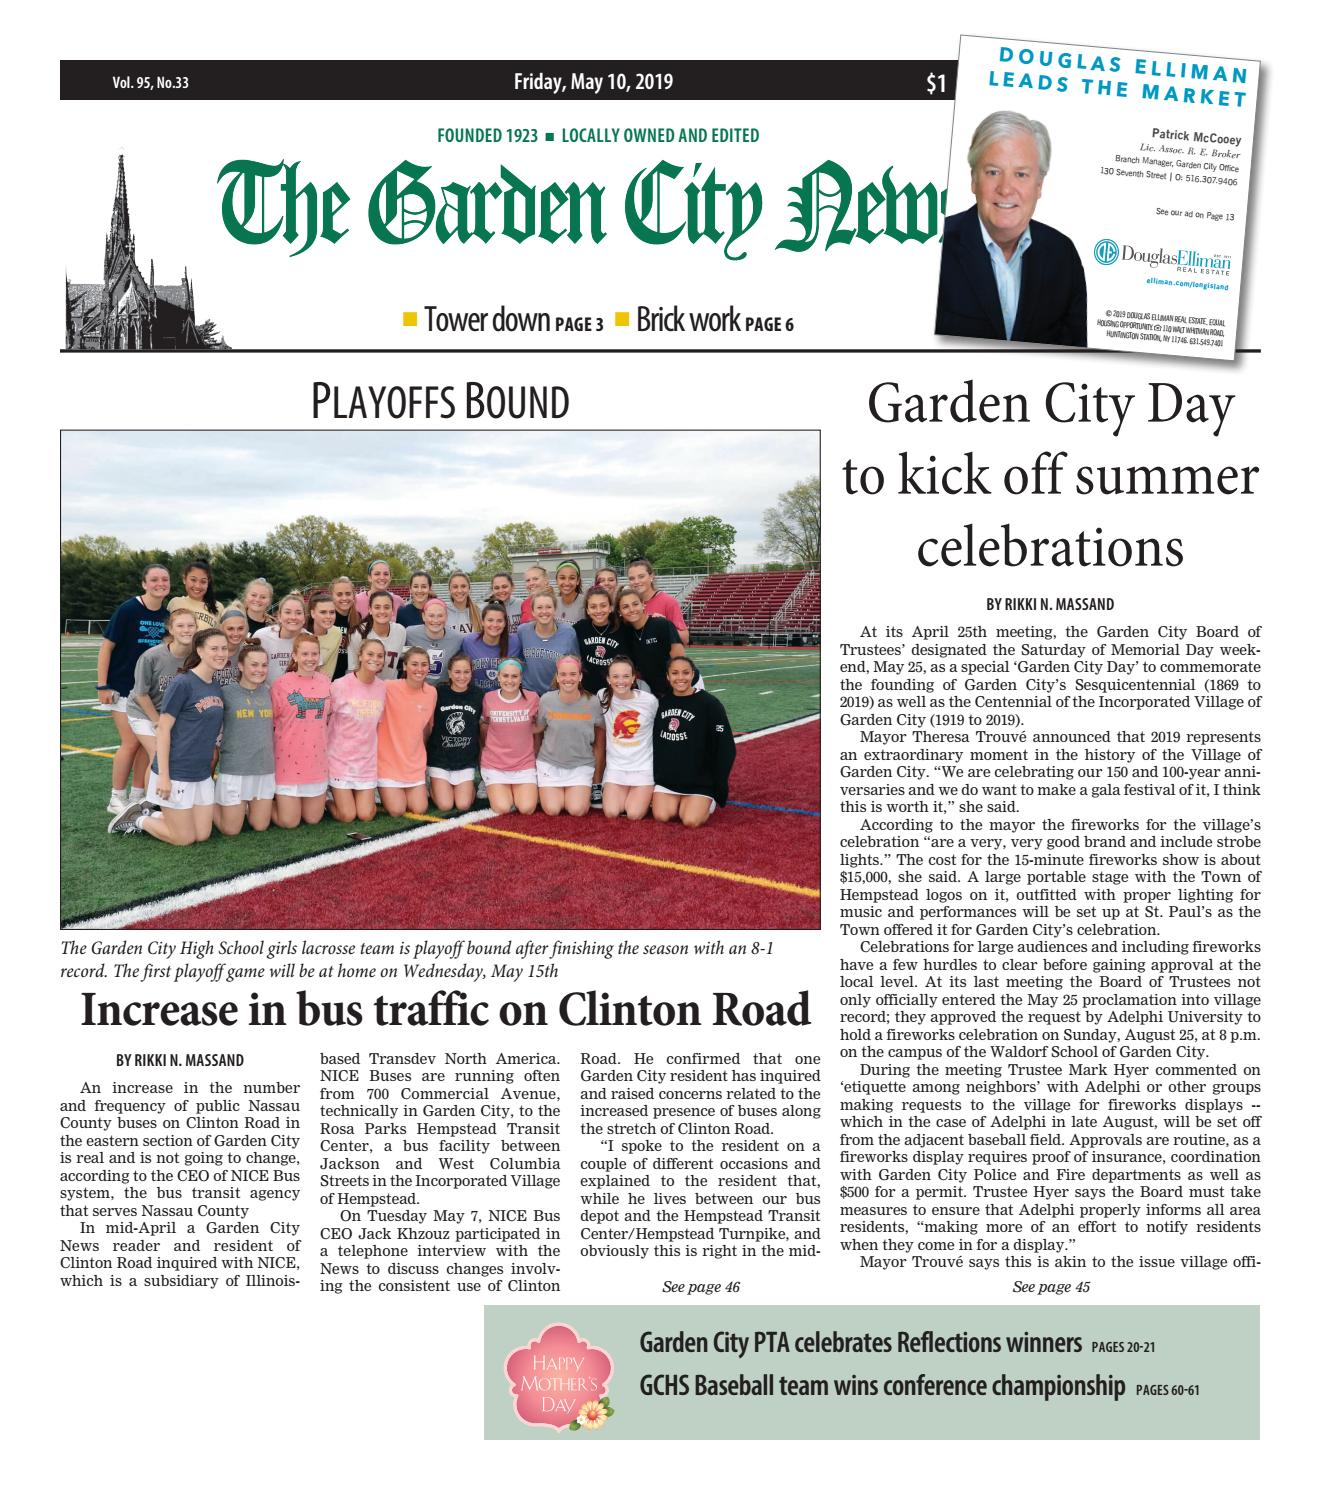 8ff3cd85923a08 The Garden City News (5/10/19) by Litmor Publishing - issuu